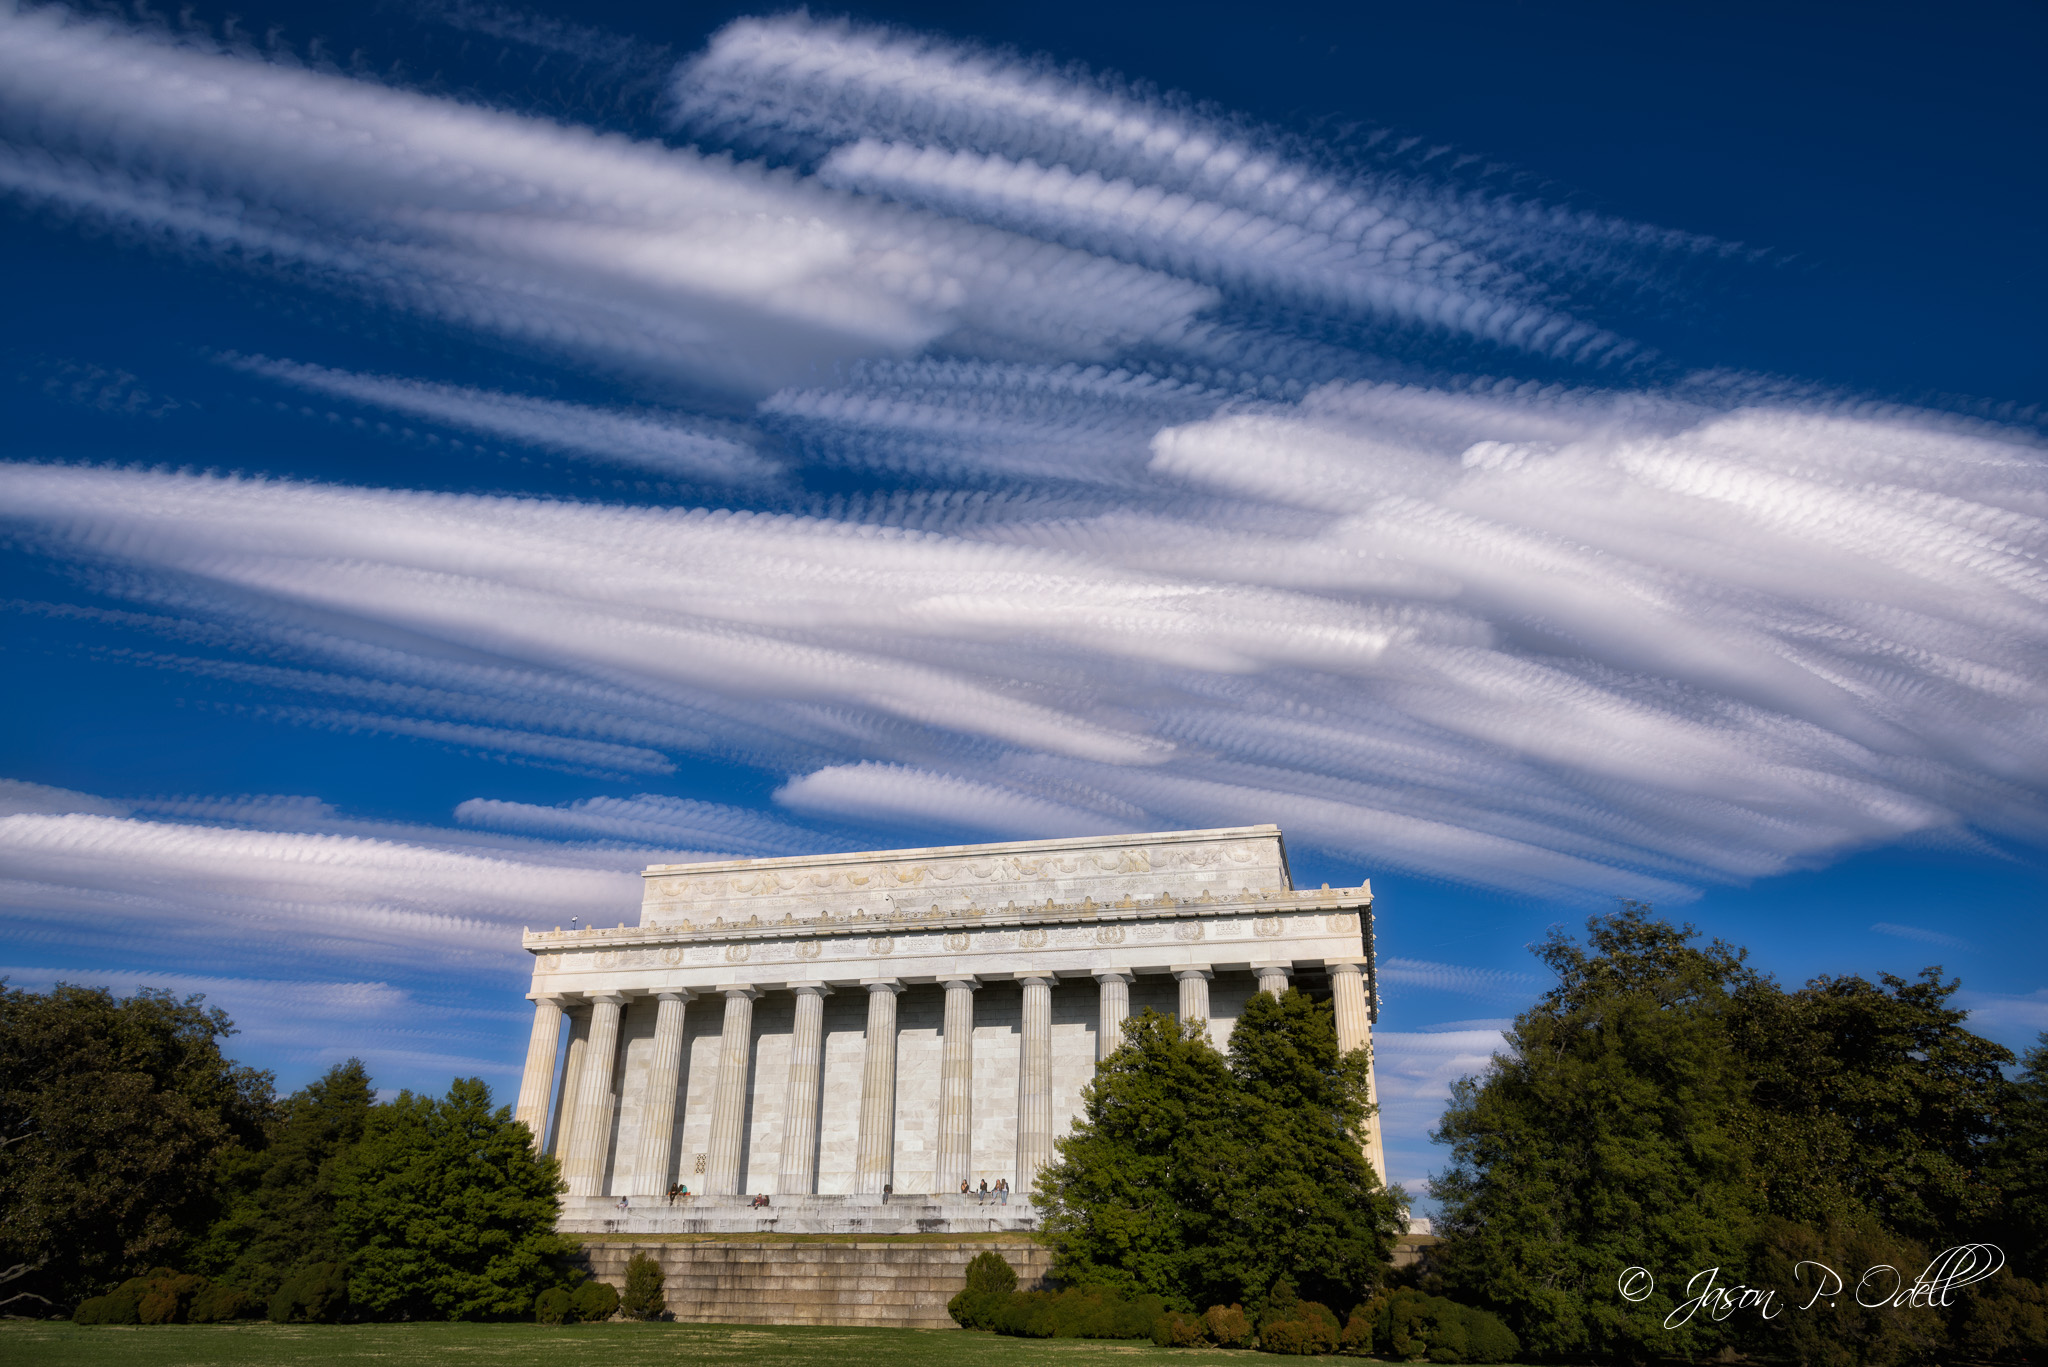 Clouds passing over the Lincoln Memorial, Washington, D.C.